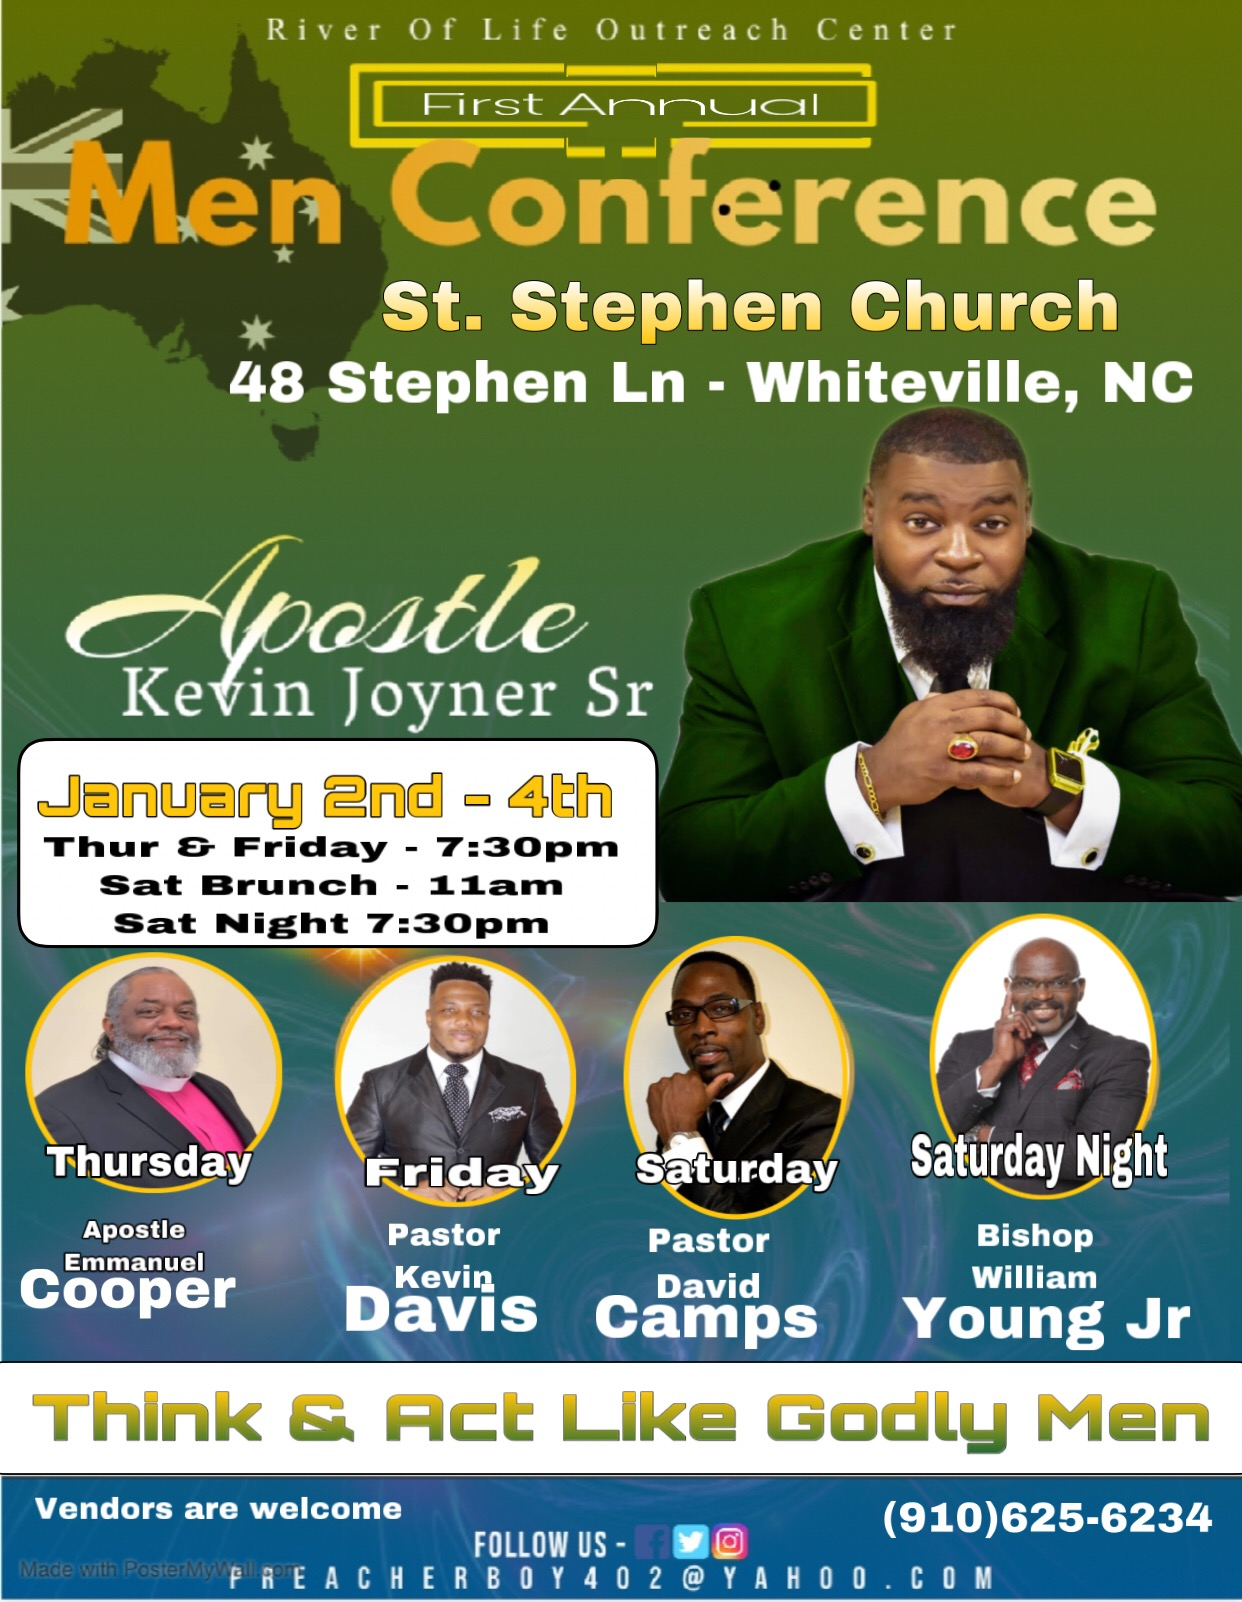 First Annual Men's Conference River of Life Outreach Center